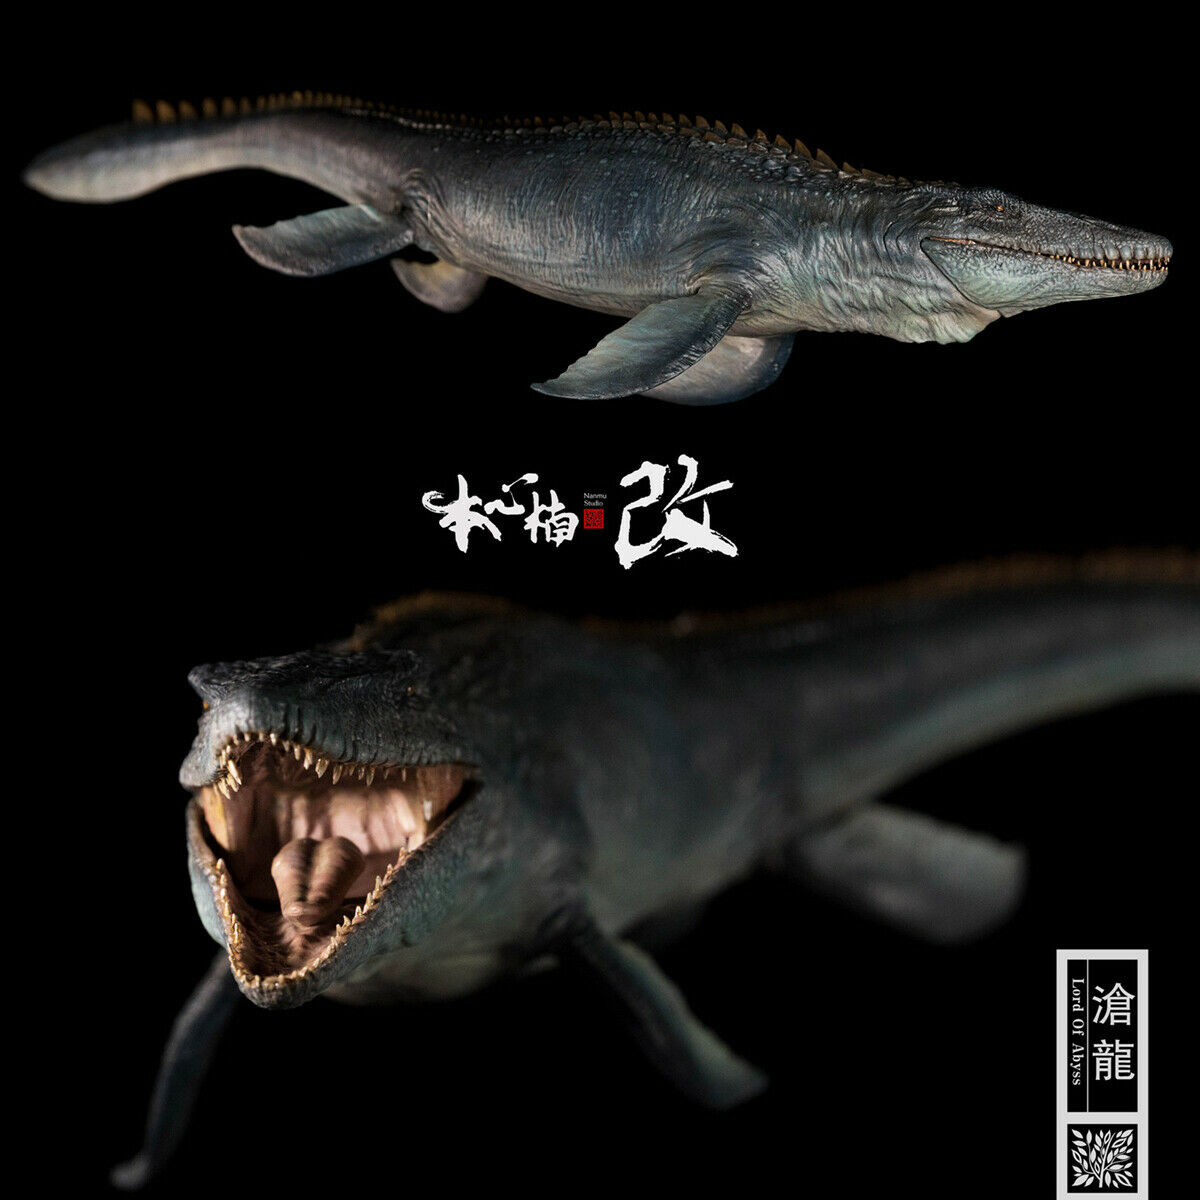 Nanmu Mosasaurus Figure Lord of Abyss Mosasauridae Dinosaur Collector Animal Toy for sale online